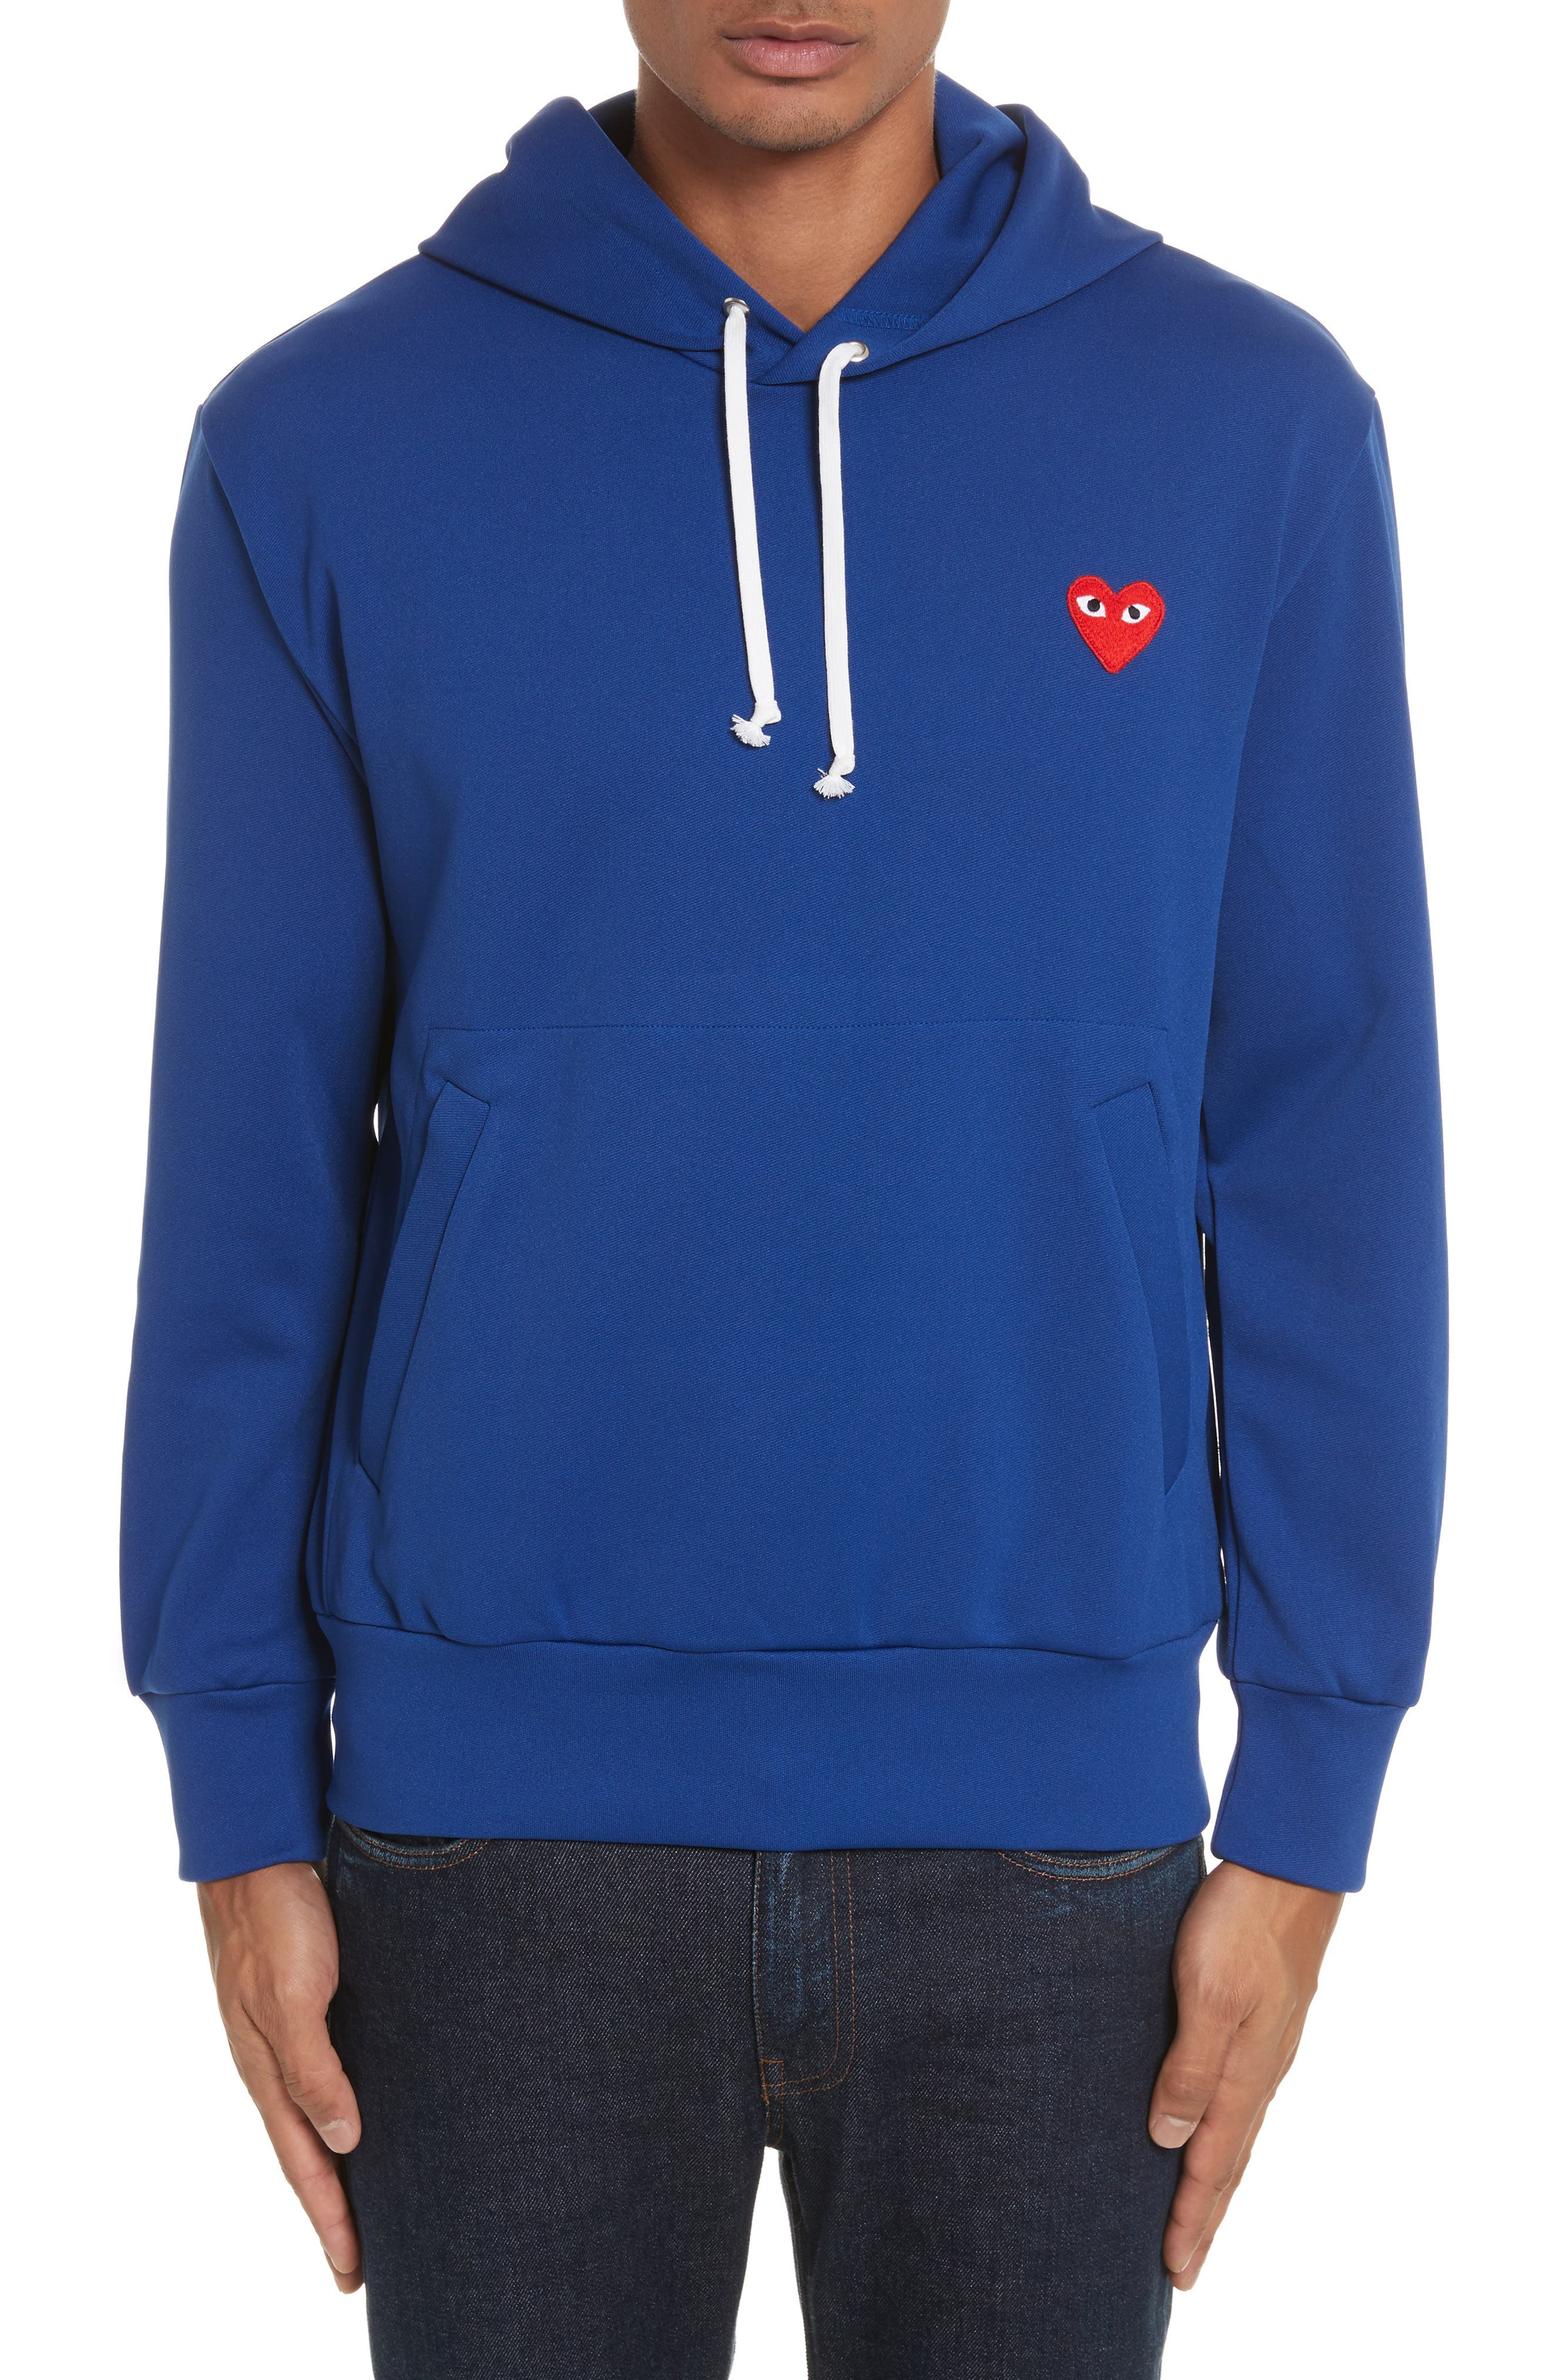 Comme des Garçons PLAY Pullover Hoodie,                         Main,                         color, Navy